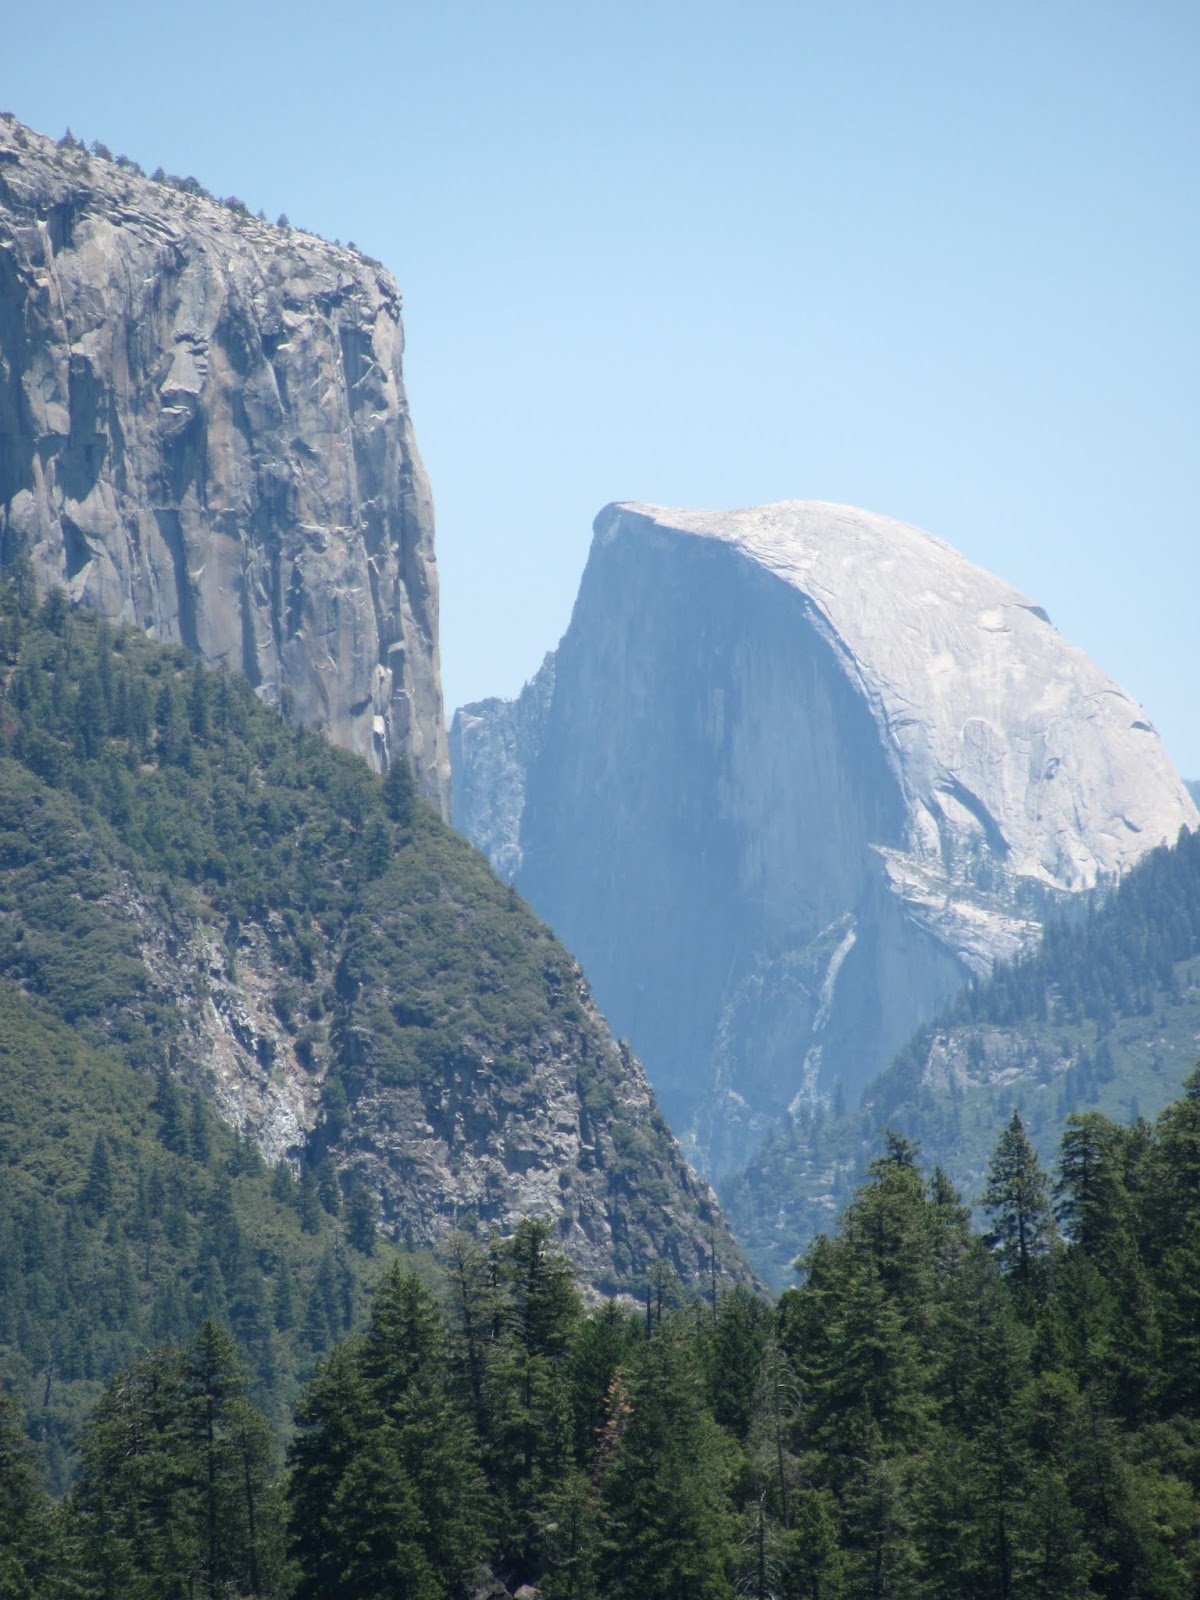 Granite half dome towers above the valley floor at Yosemite National Park, California